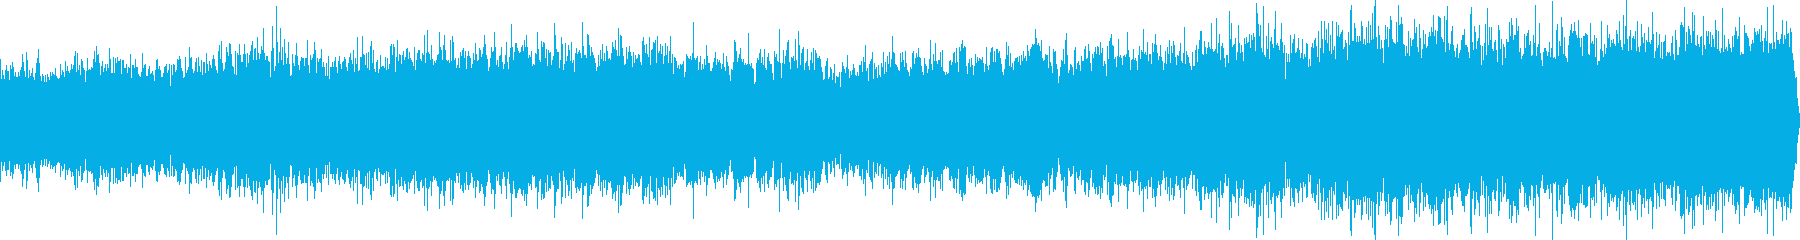 water suction pipe's reproduced waveform